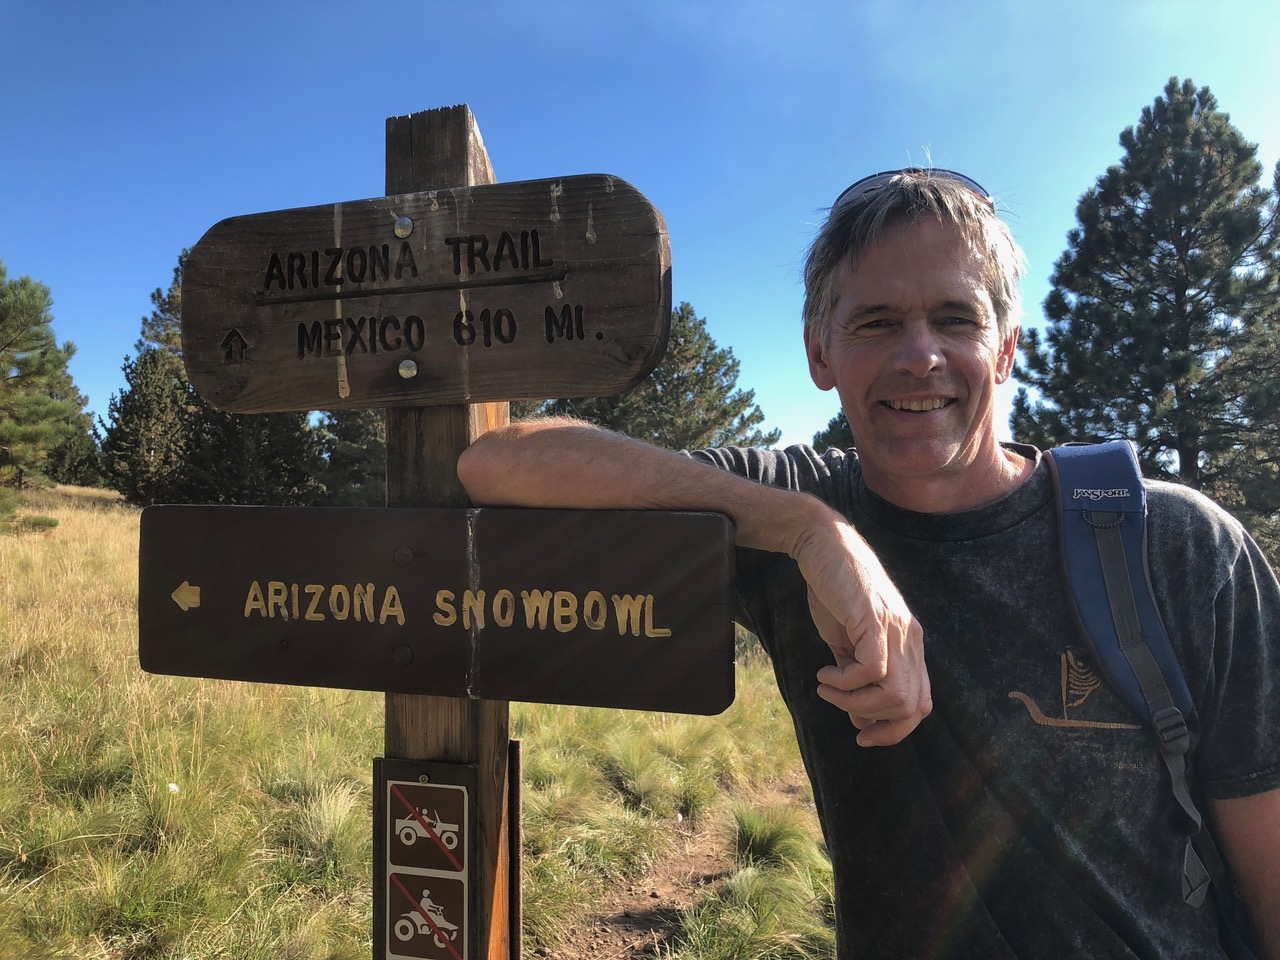 Picture of Scott Goetz next to Arizona Trail hiking sign